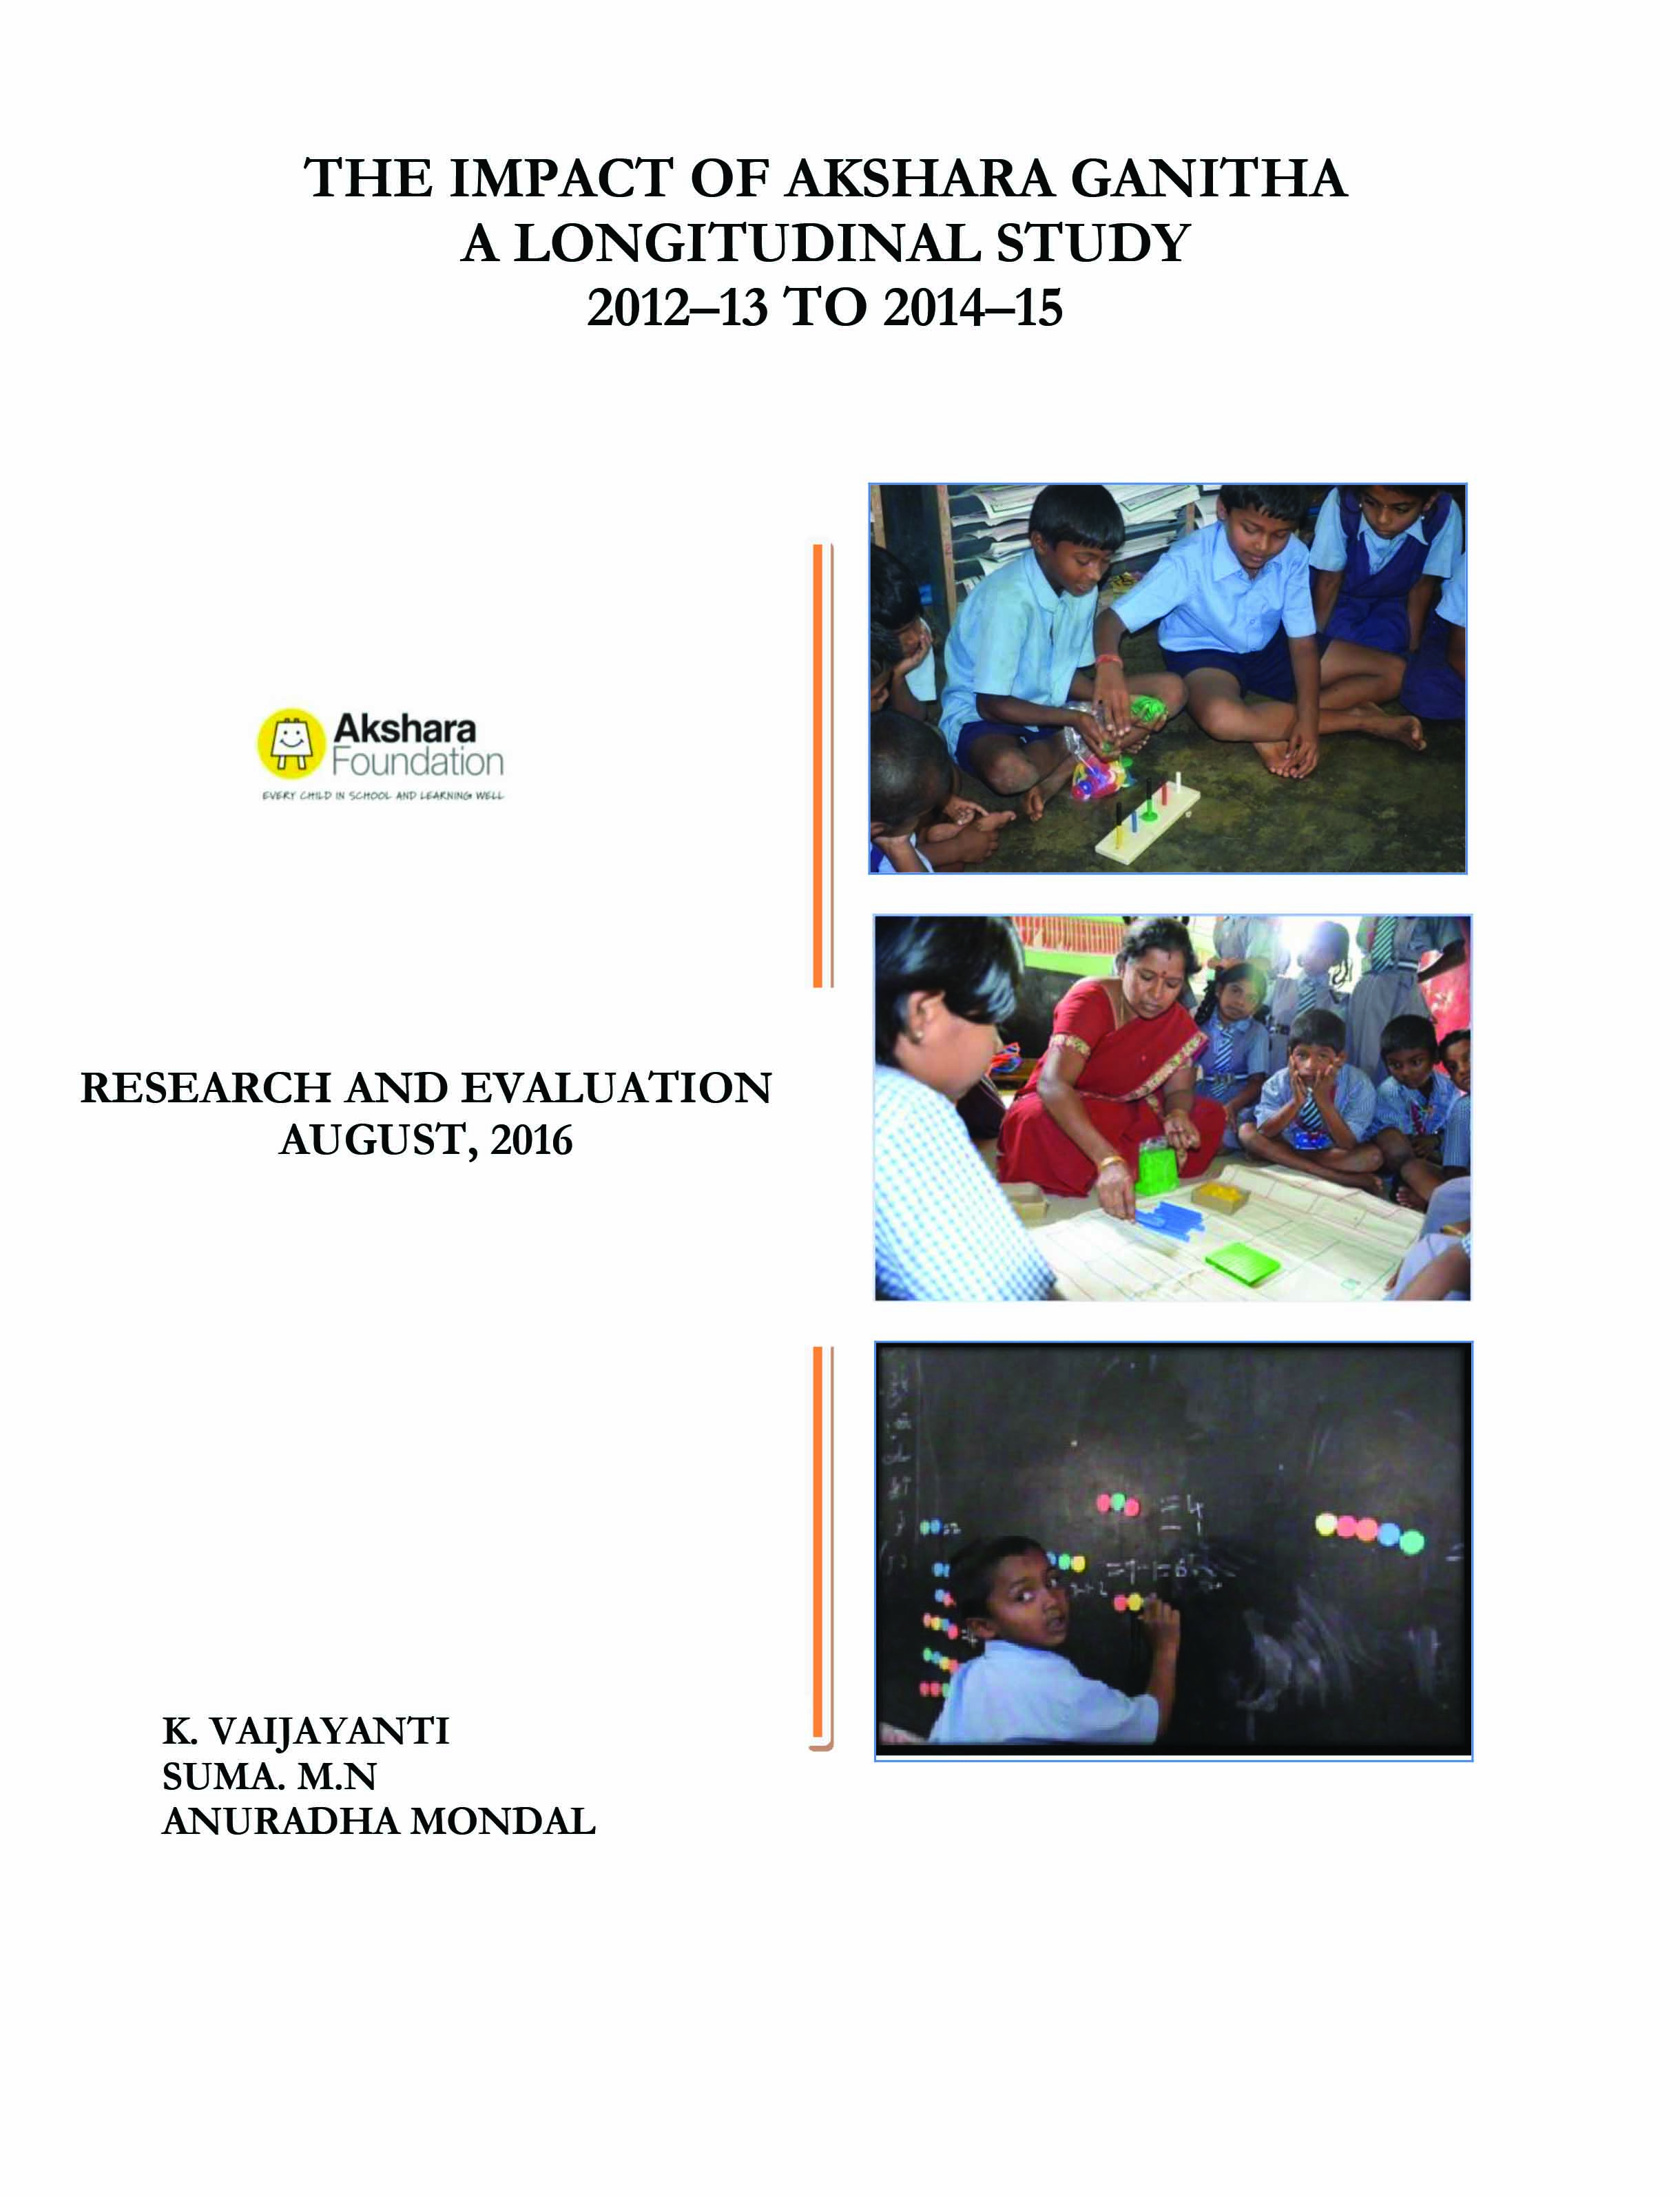 The Impact of Akshara Ganitha - A Longitudinal Study 2012-13 to 2014-15